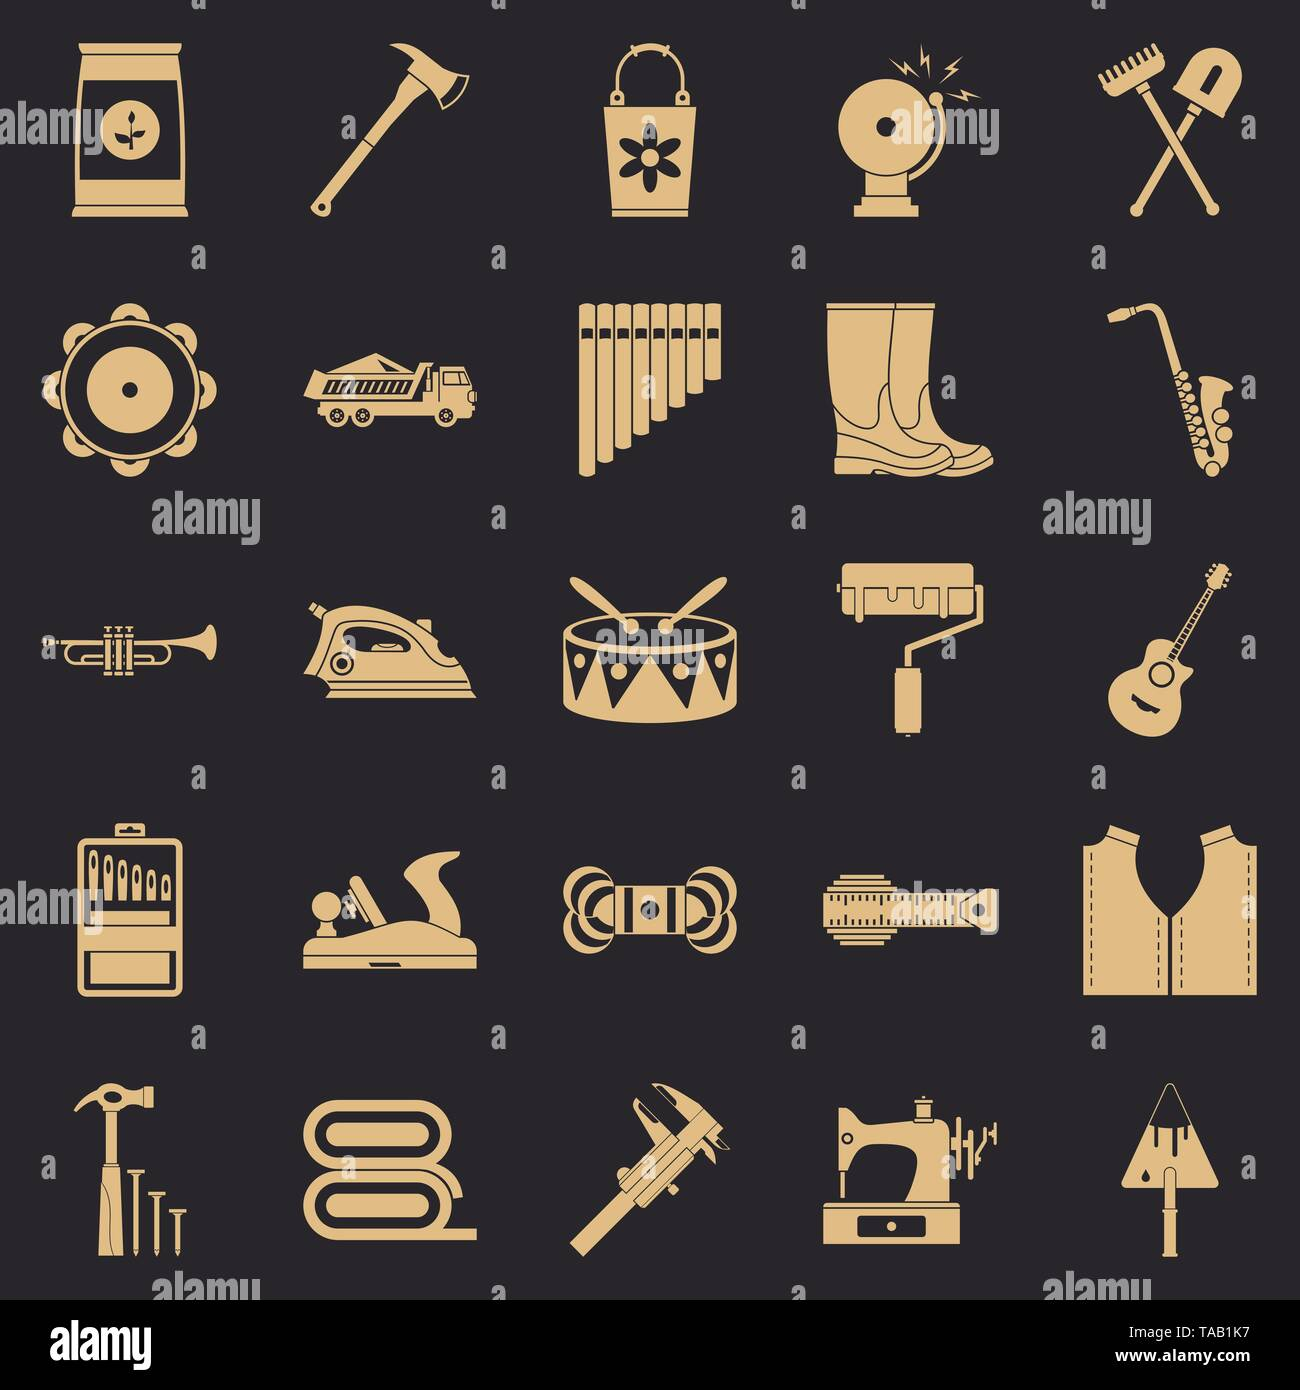 Working gear icons set, simple style - Stock Image